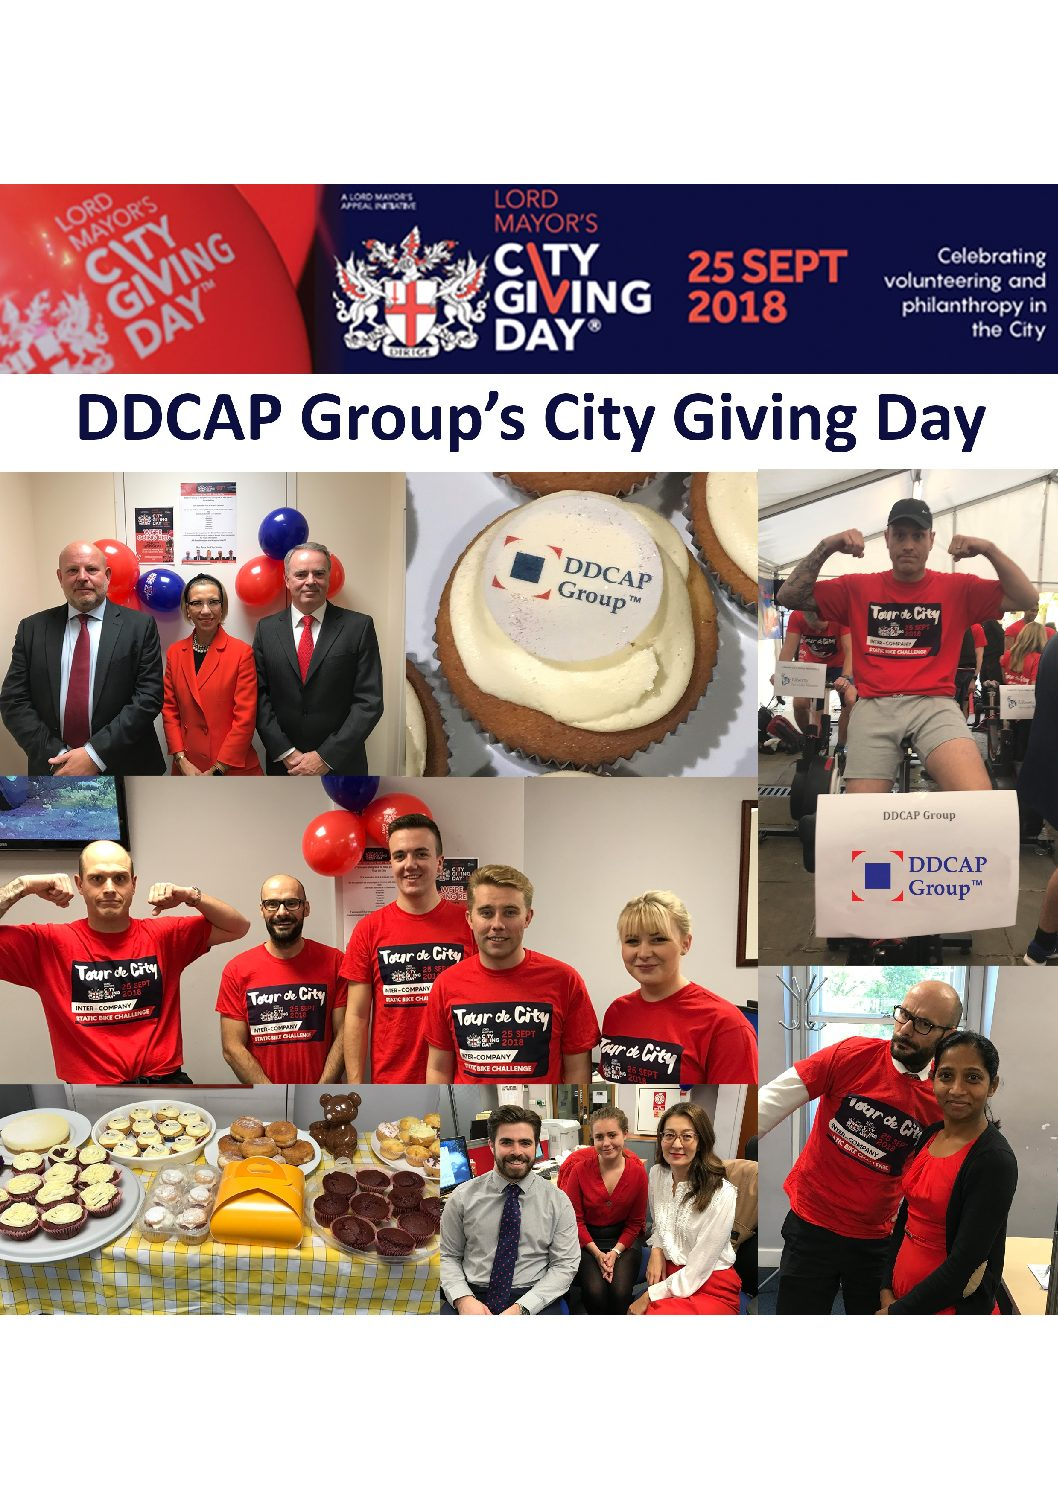 DDCAP Group were proud to support this years City Giving Day, 25th September 2018